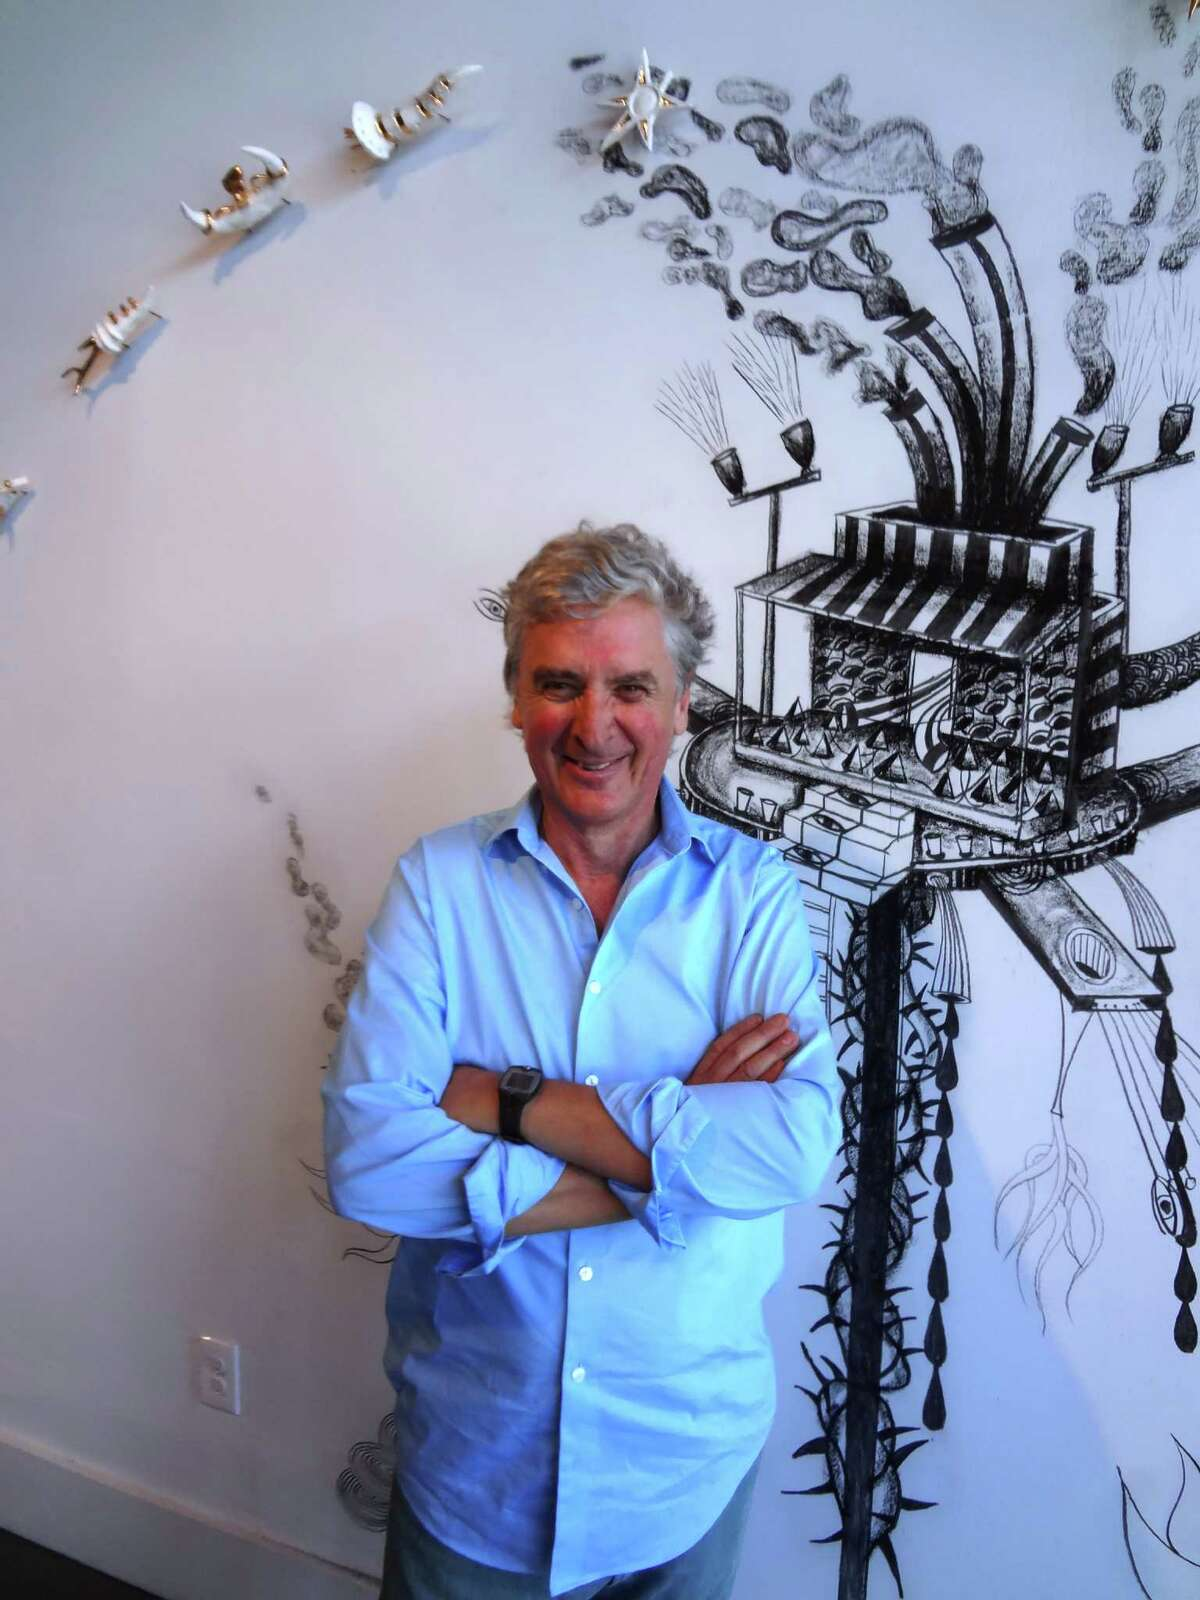 Argentinian artist Nicolas Leiva created a wall drawing and ceramic sculpture work at Ruiz-Healy Art.